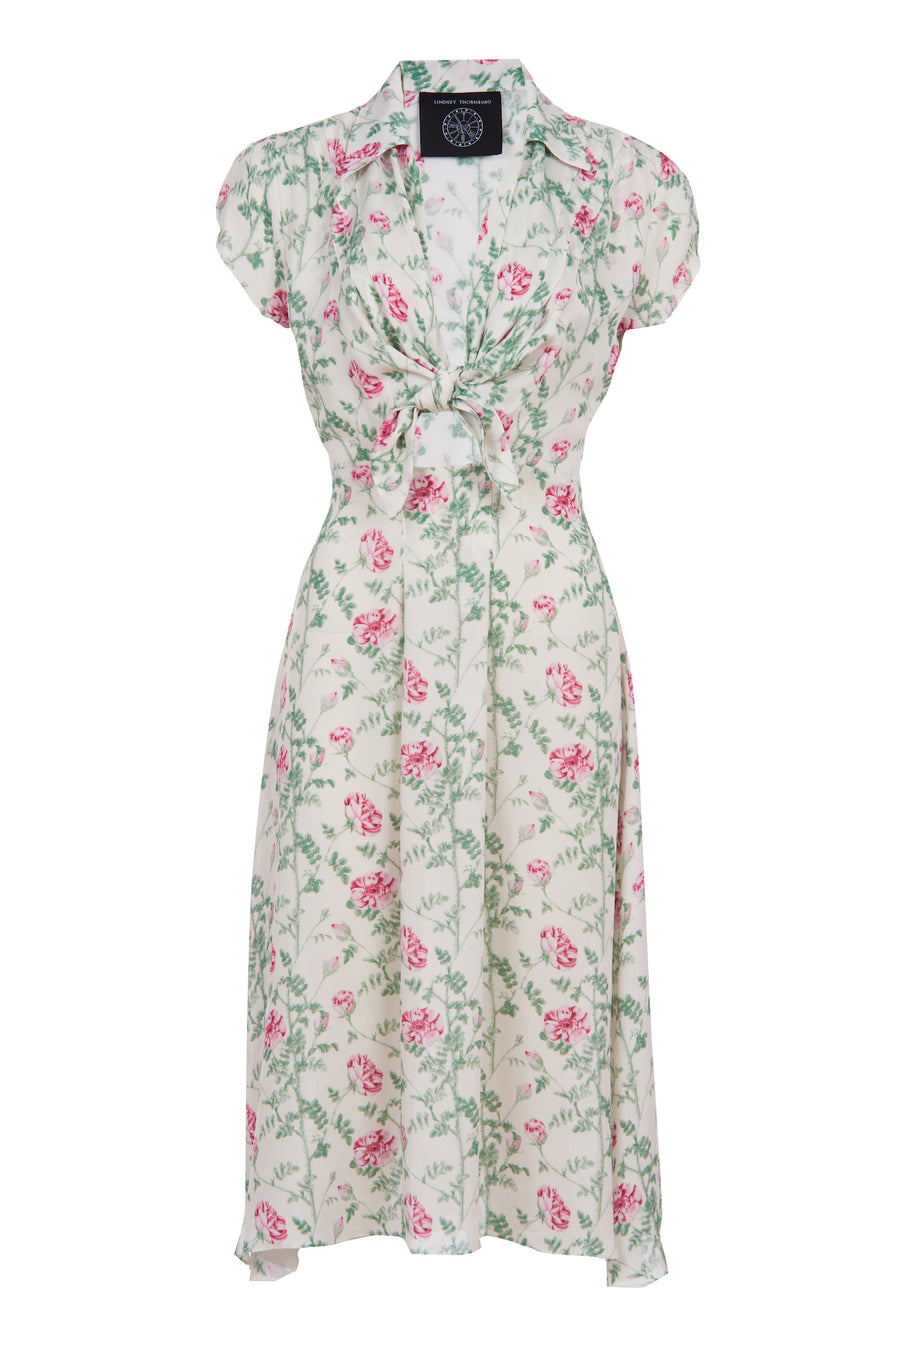 THE SWEETEST ROSE CLARK DRESS